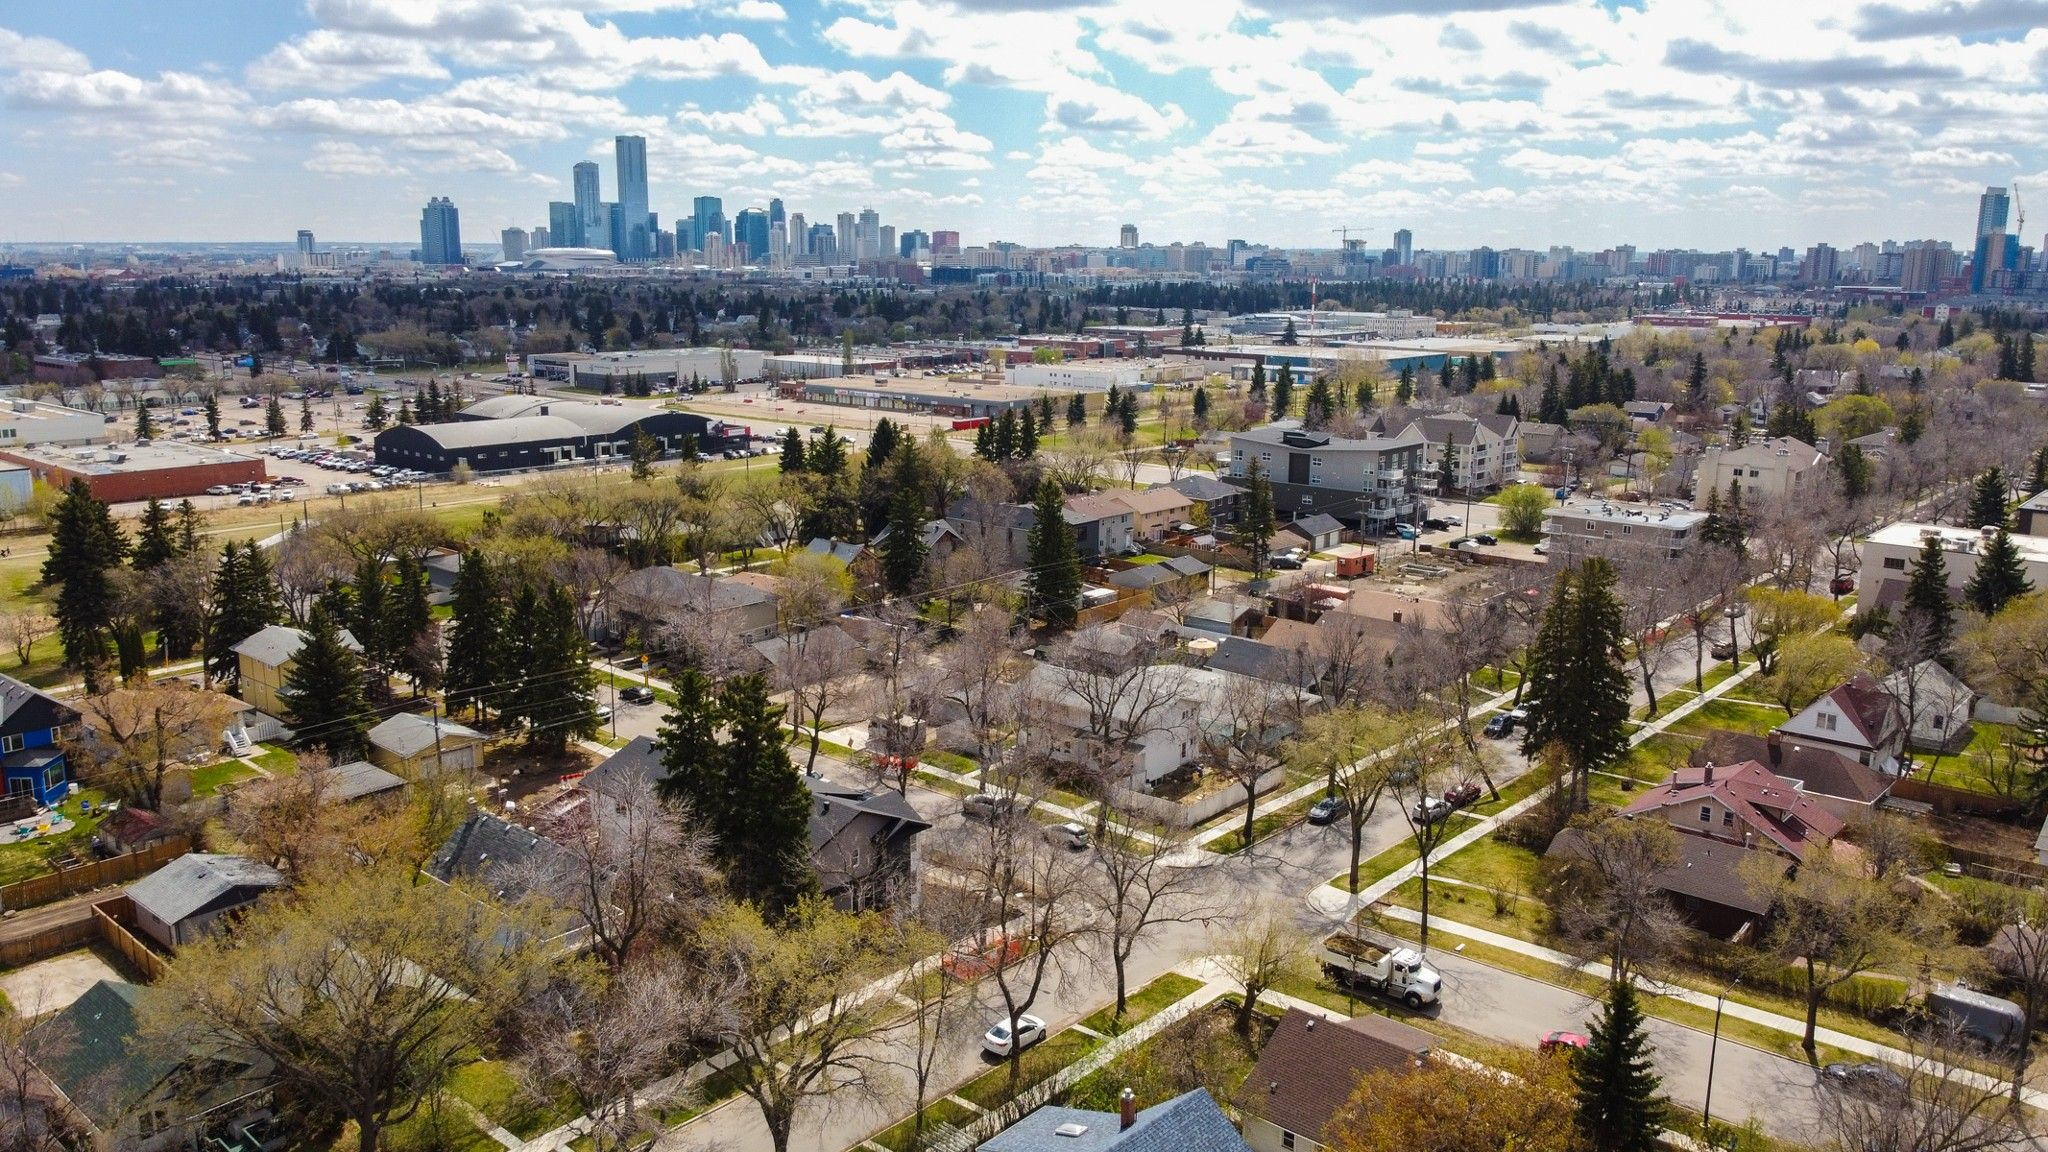 Main Photo: 12220 112 Avenue NW in Edmonton: Inglewood Multi-Family Commercial for sale : MLS®# E4243837